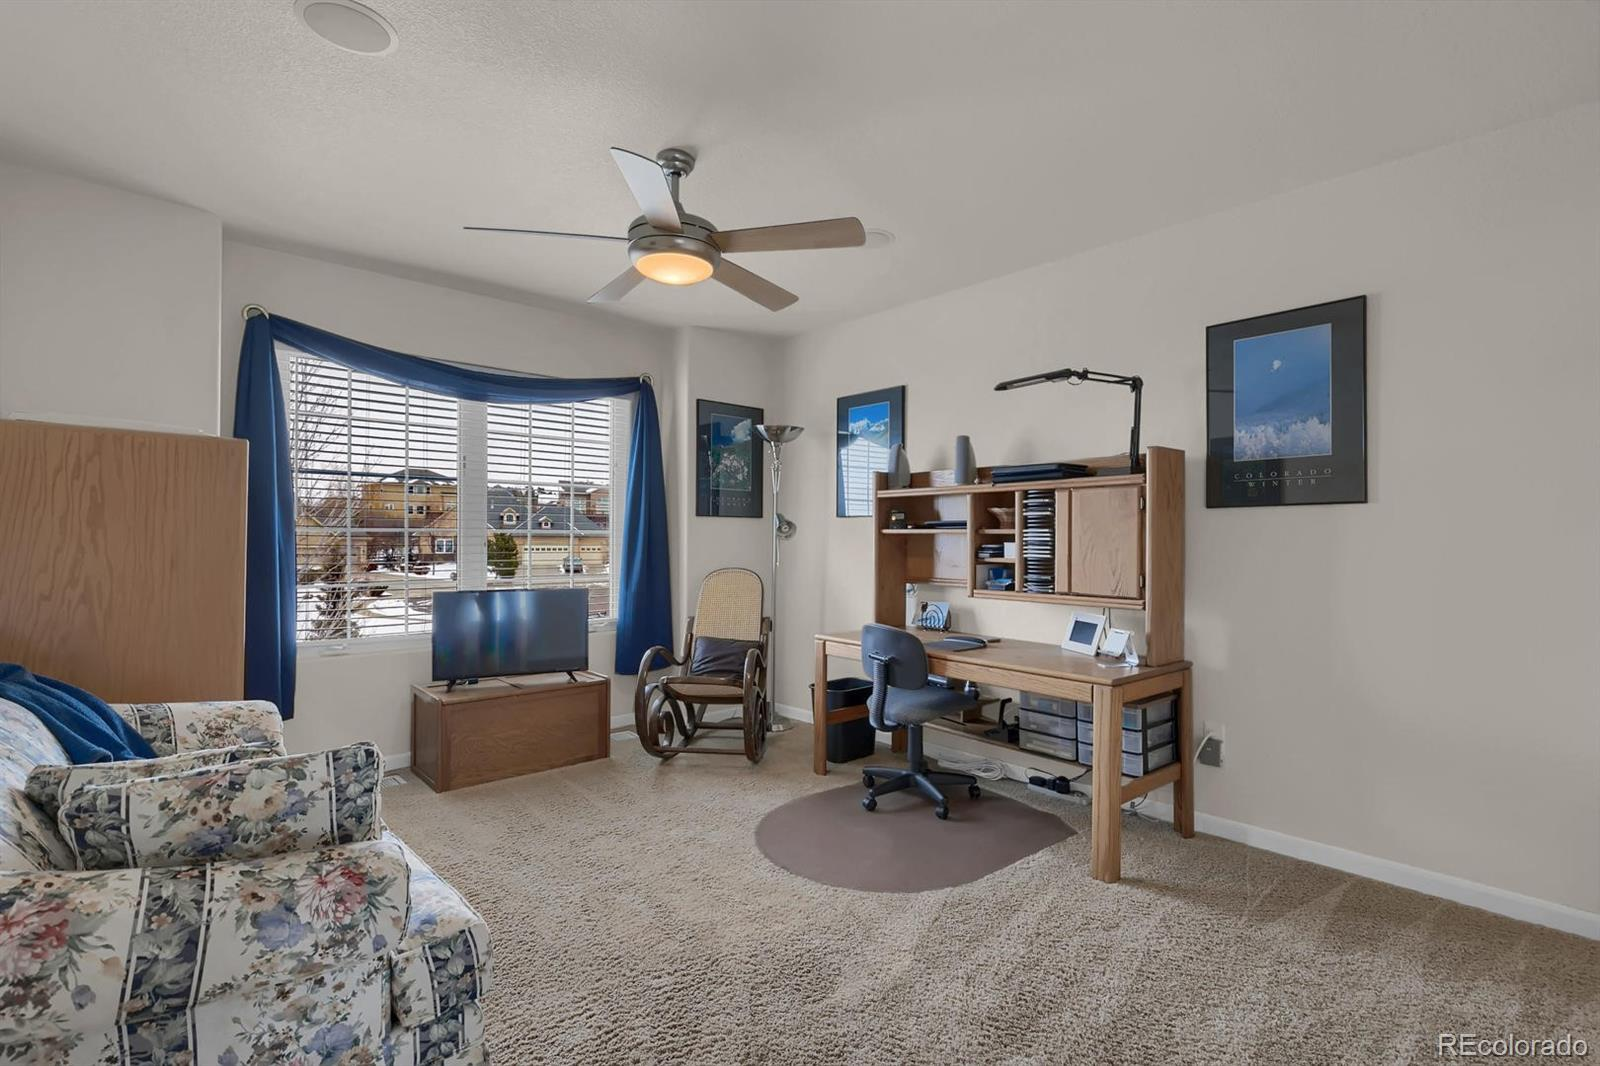 MLS# 5159811 - 26 - 207 Green Rock Place, Monument, CO 80132